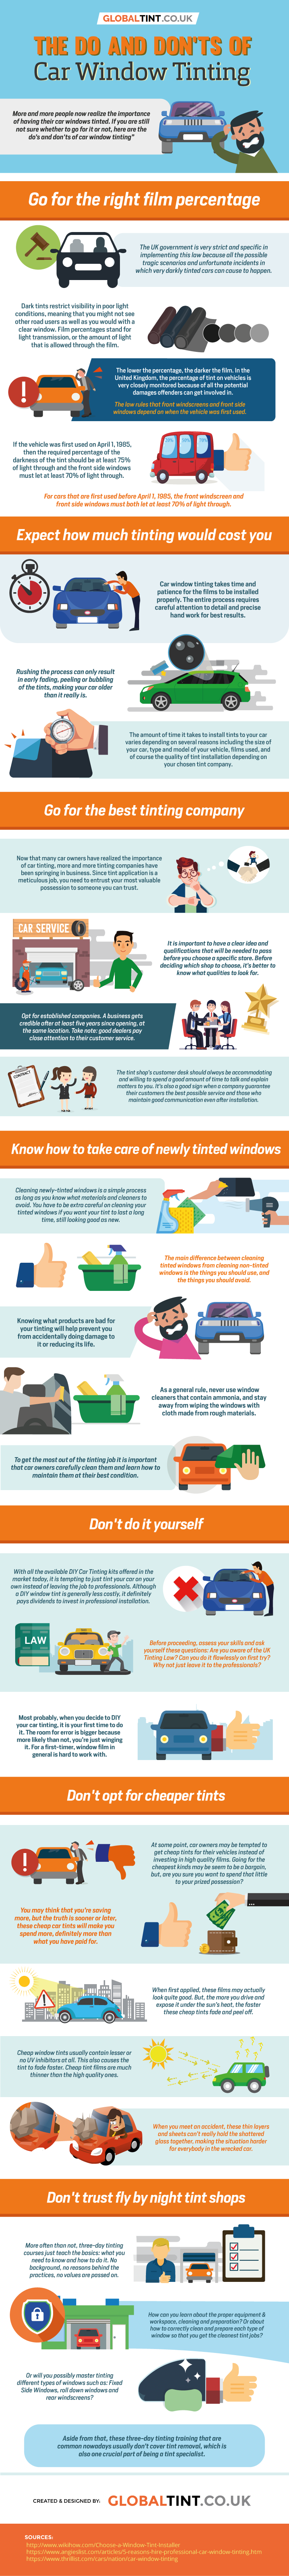 The Do and Donts of Car Window Tinting